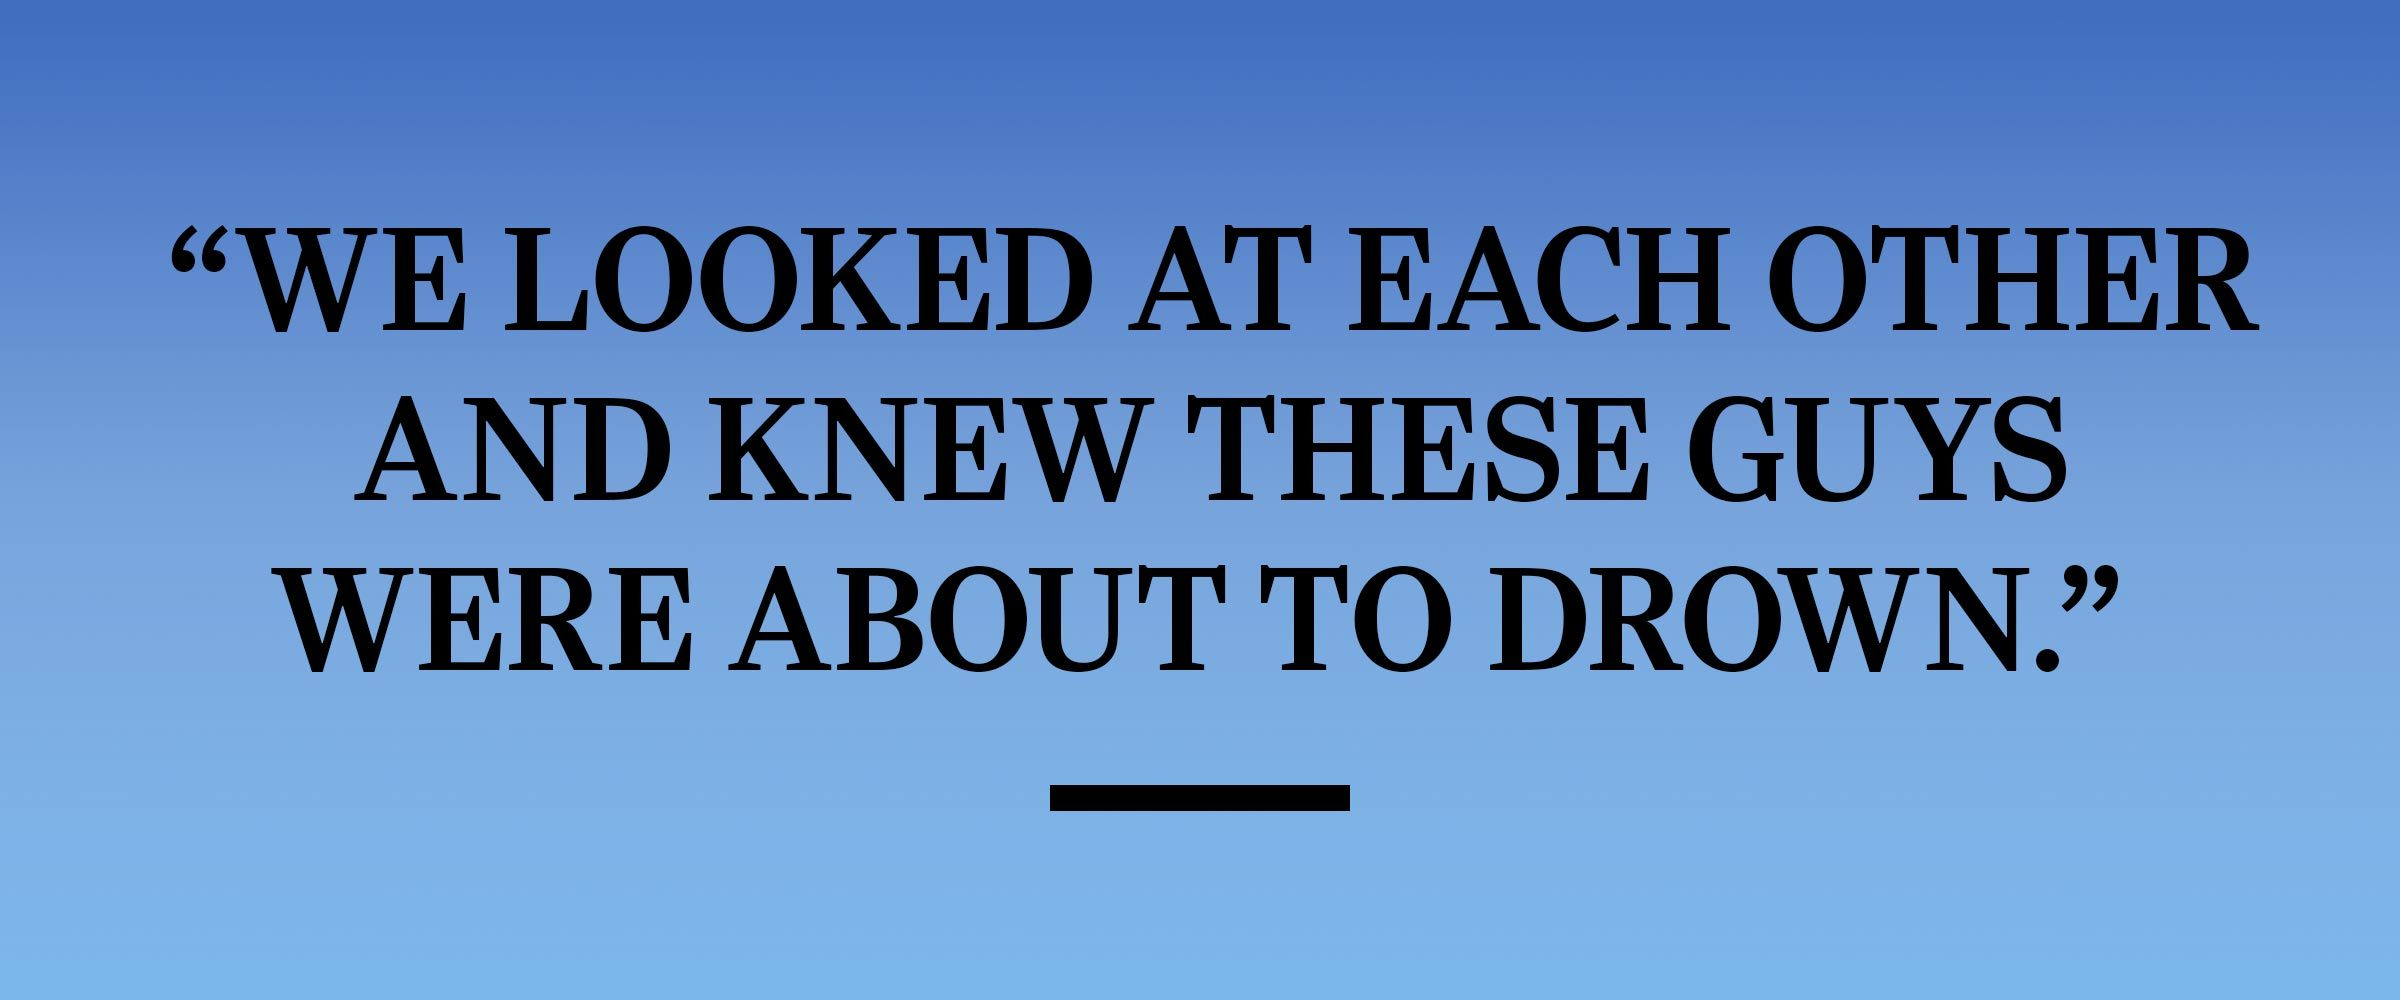 """text: """"We looked at each other and knew these guys were about to drown."""""""